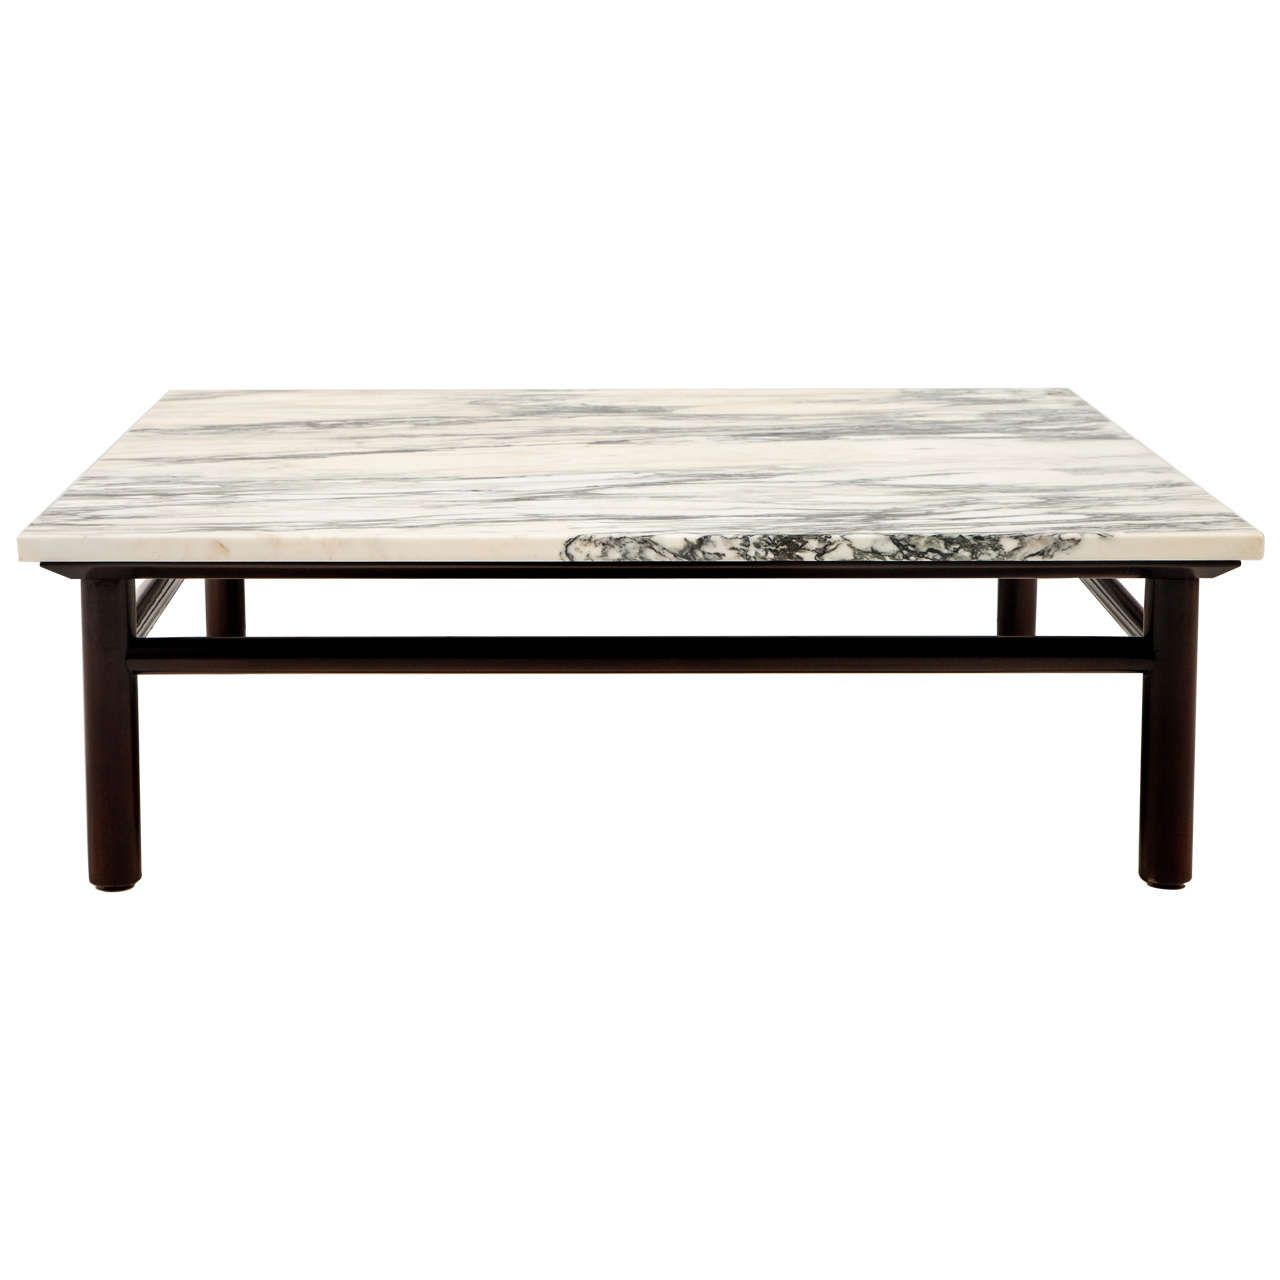 Robsjohn Gibbings Walnut And Marble Coffee Table For Sale